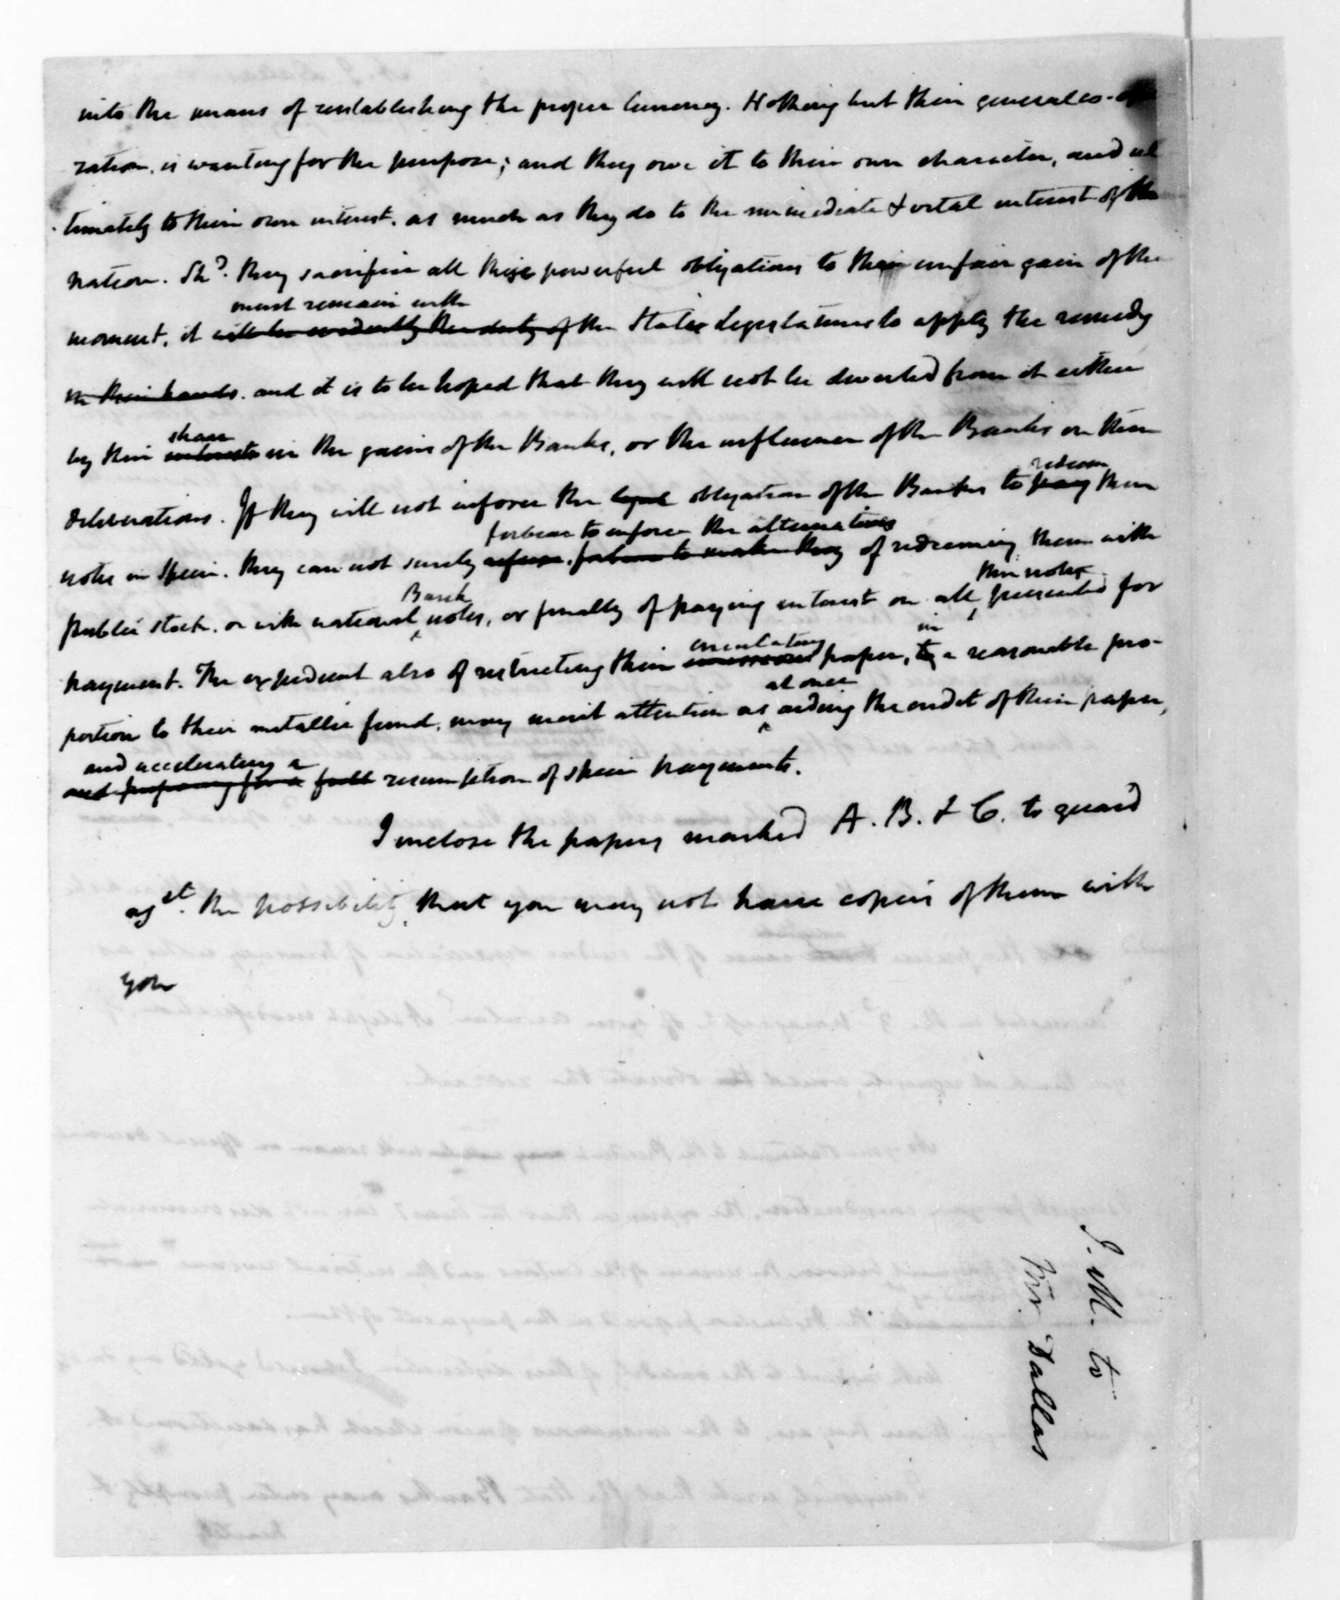 James Madison to Alexander J. Dallas, July 4, 1816.